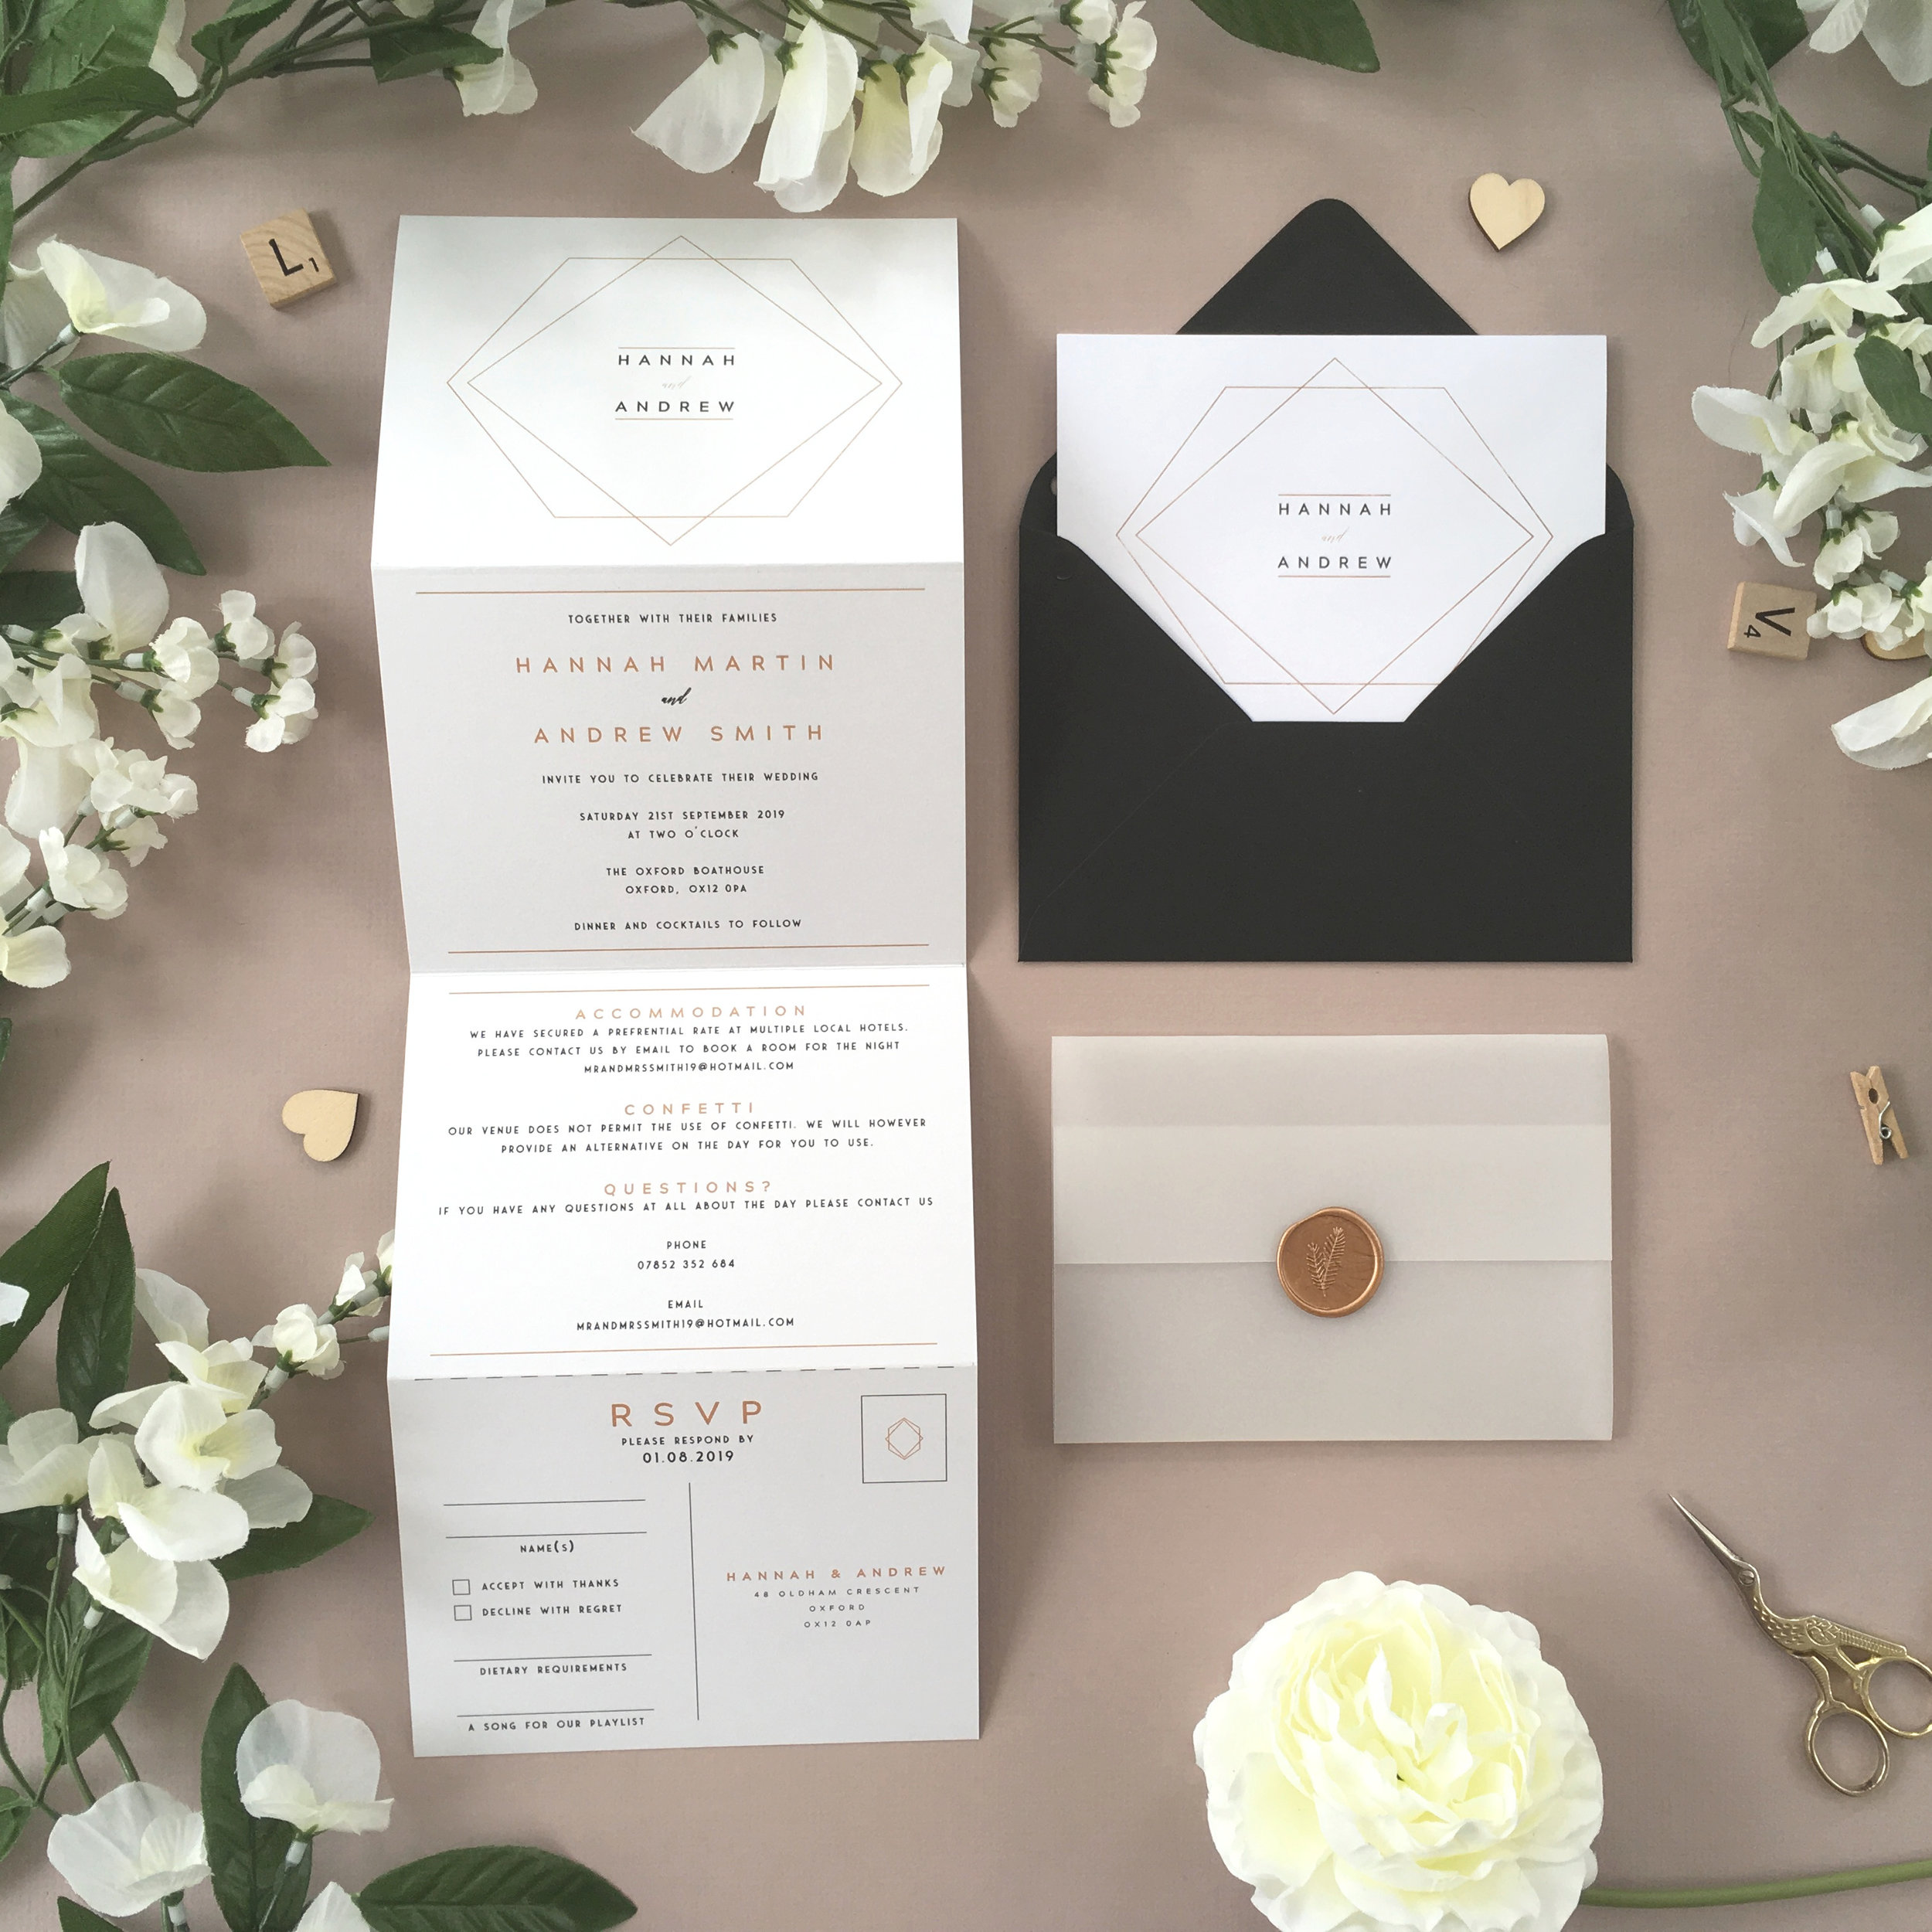 Mayfair - A simple and minimalist style is used with our Mayfair collection, using geometric styling alongside modern typography on this concertina invitation.Our concertina invitations are a great all-in-one solution, with a detachable RSVP at the bottom of the invitation - all guests need to do is fill in their details, put a stamp in the corner and post!Concertina invitations can be provided on an as-is basis, or can be provided bound with a vellum jacket and timeless wax seal, or tied with ribbon or twine for a lovely hand-finished approach.- Concertina Invitation - from £1.95- Ribbon or Twine - £0.40- Vellum Jacket - £0.40- Wax Seal - £0.85 (Custom engraving also available)White envelope provided as standard with coloured upgrade available.